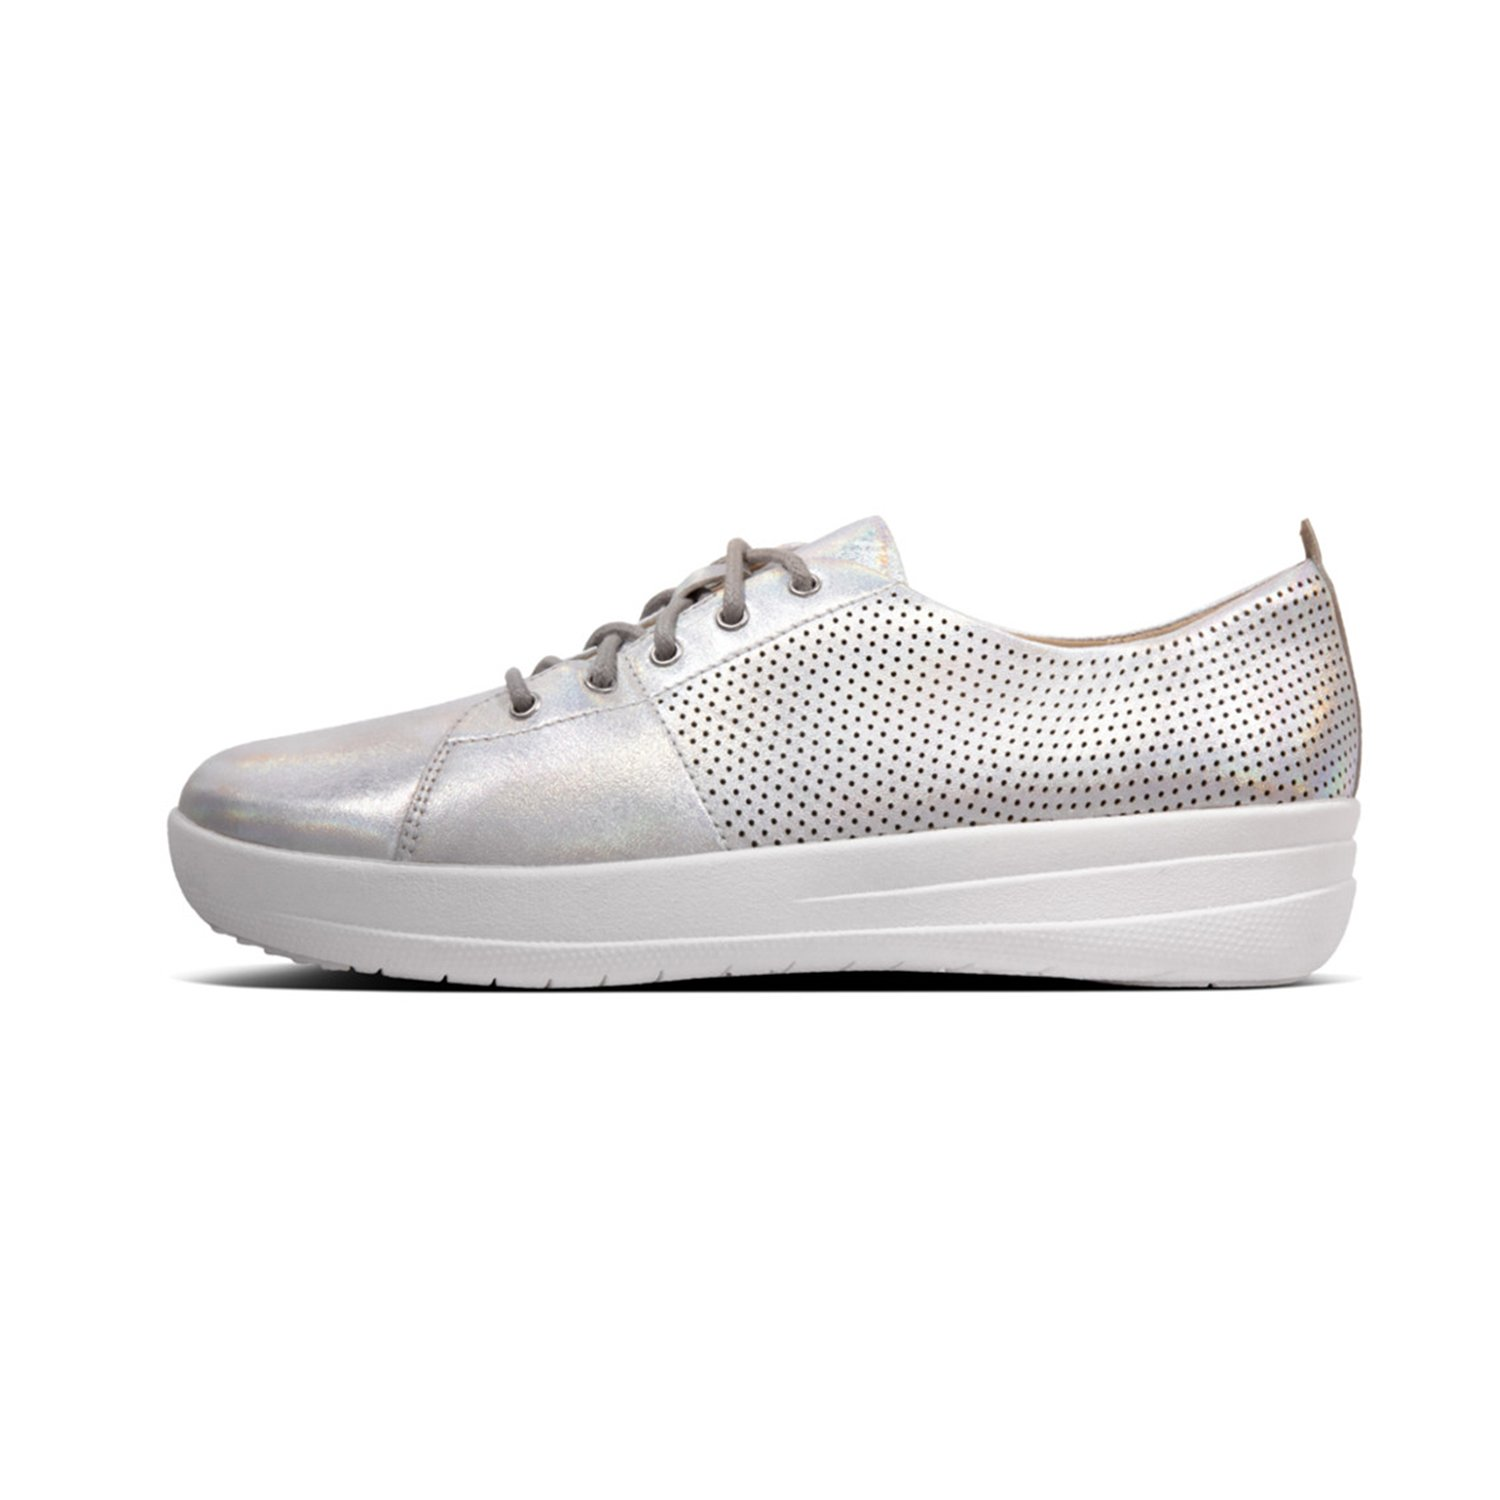 0a38f30611 Amazon.com | FitFlop Womens F-Sporty Scoop Cut Perforated Sneakers |  Fashion Sneakers